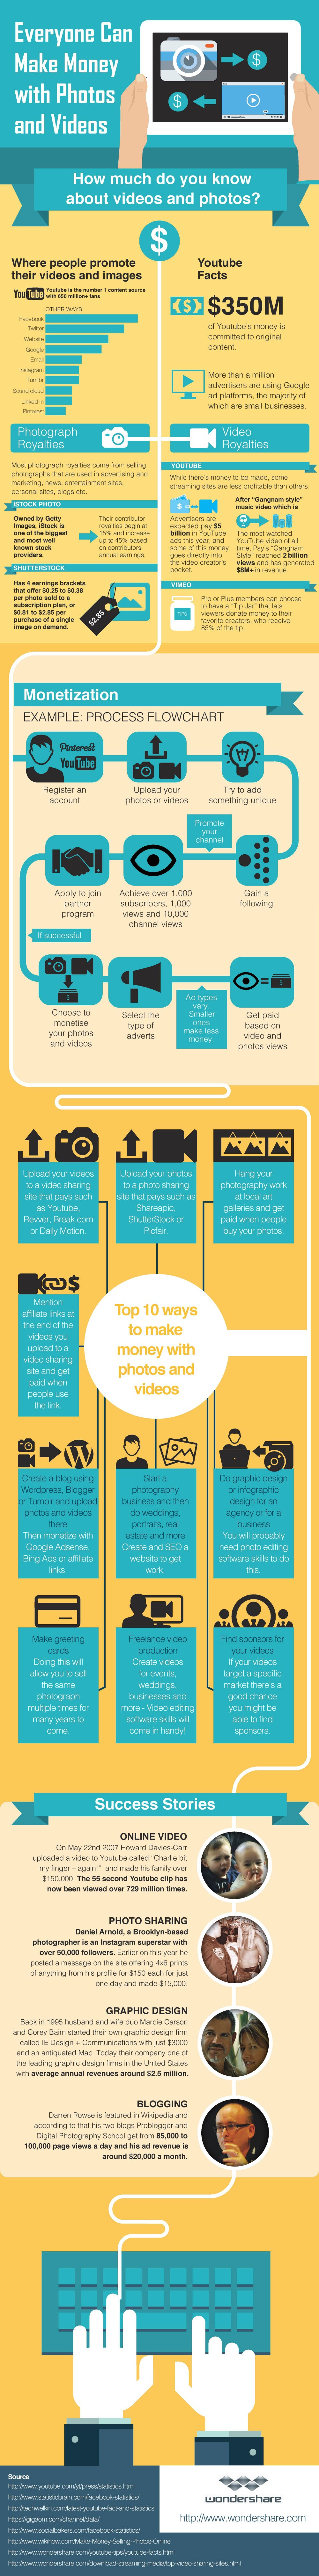 Infographic: Everyone Can Make Money with Videos and Photos #infographic